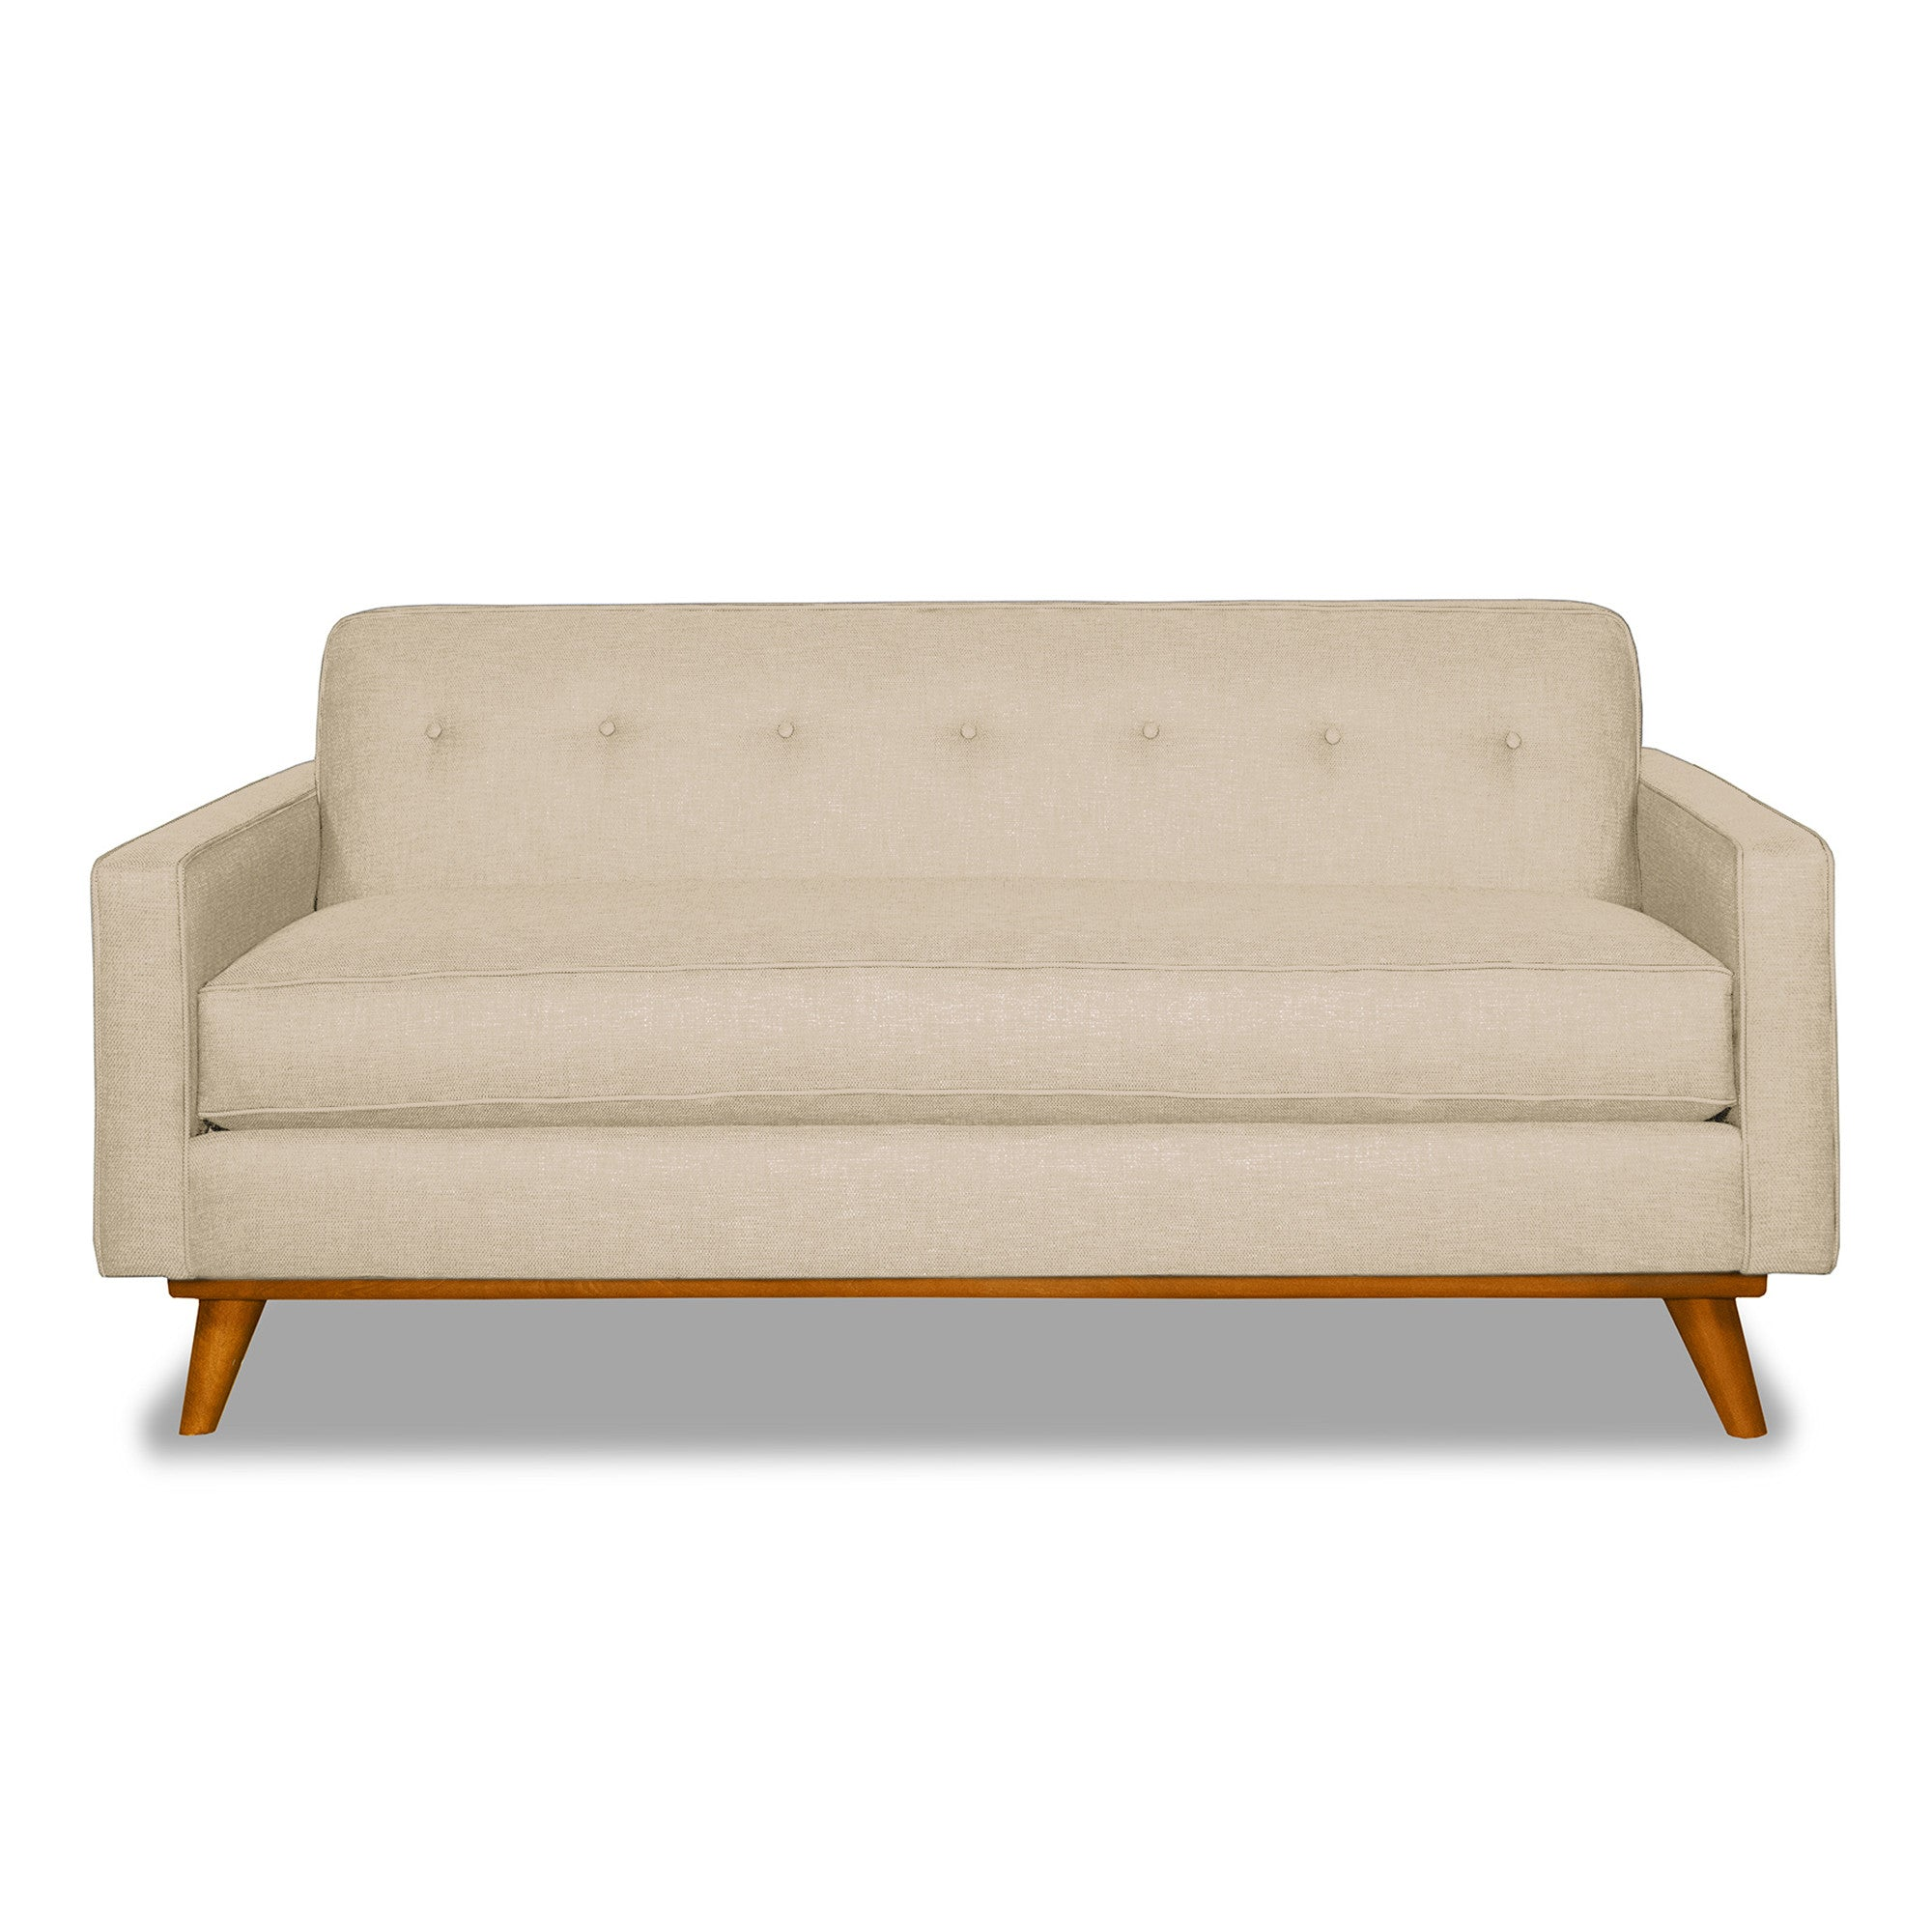 Apartment size furniture excellent full size of sofa lovely loveseat sofa apartment size - Contemporary sectional sleeper sofa a good choice for your home ...